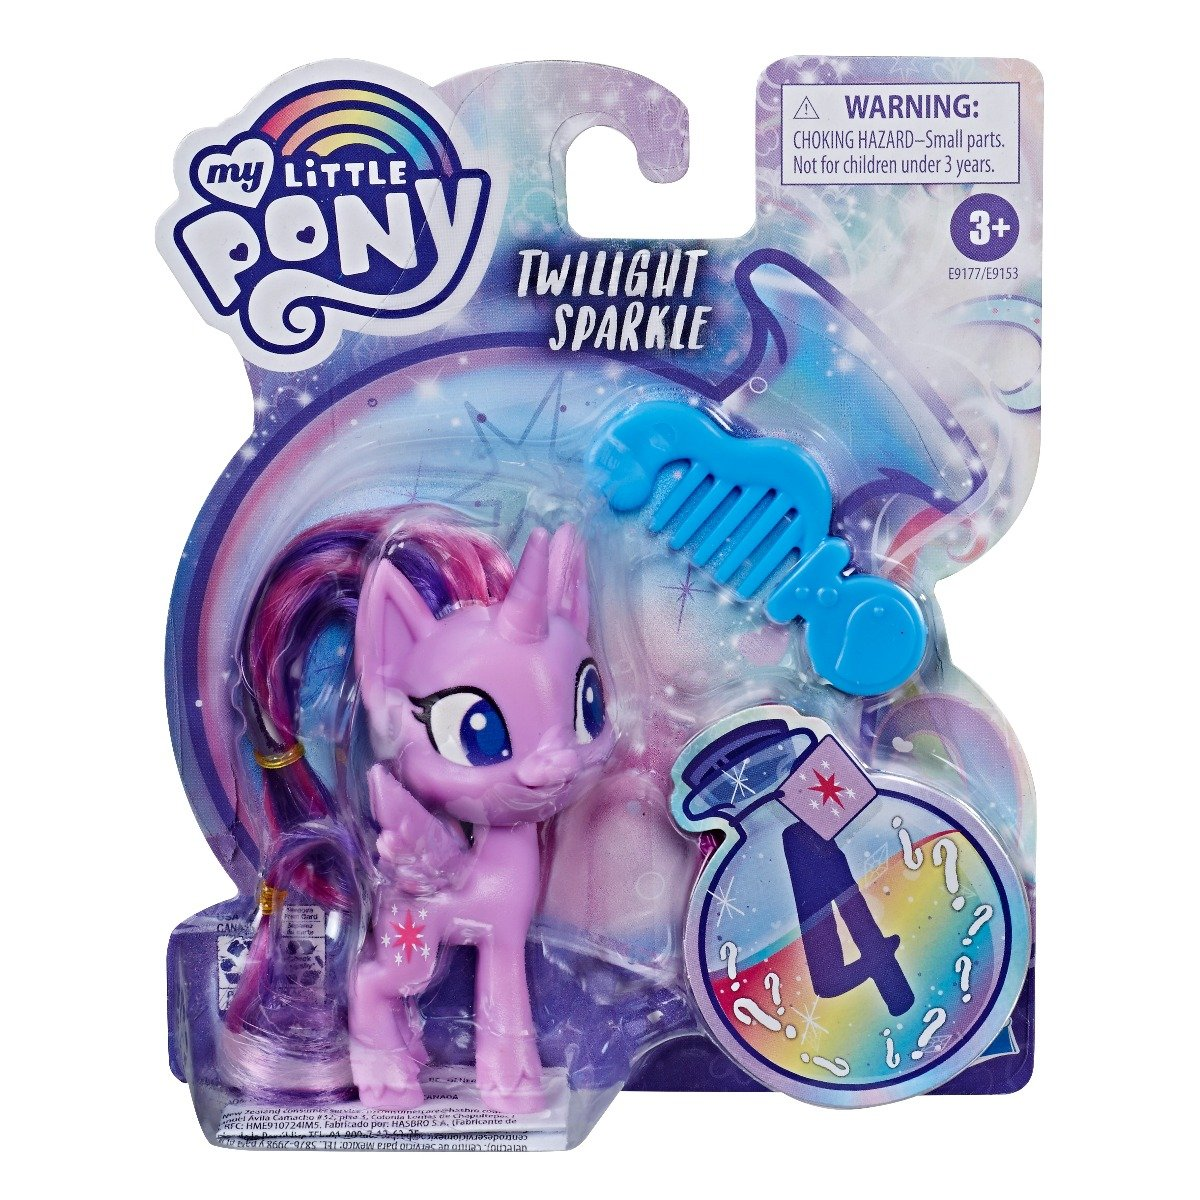 Figurina My Little Pony Potiunea Magica, Twilight Sparkle, E9177